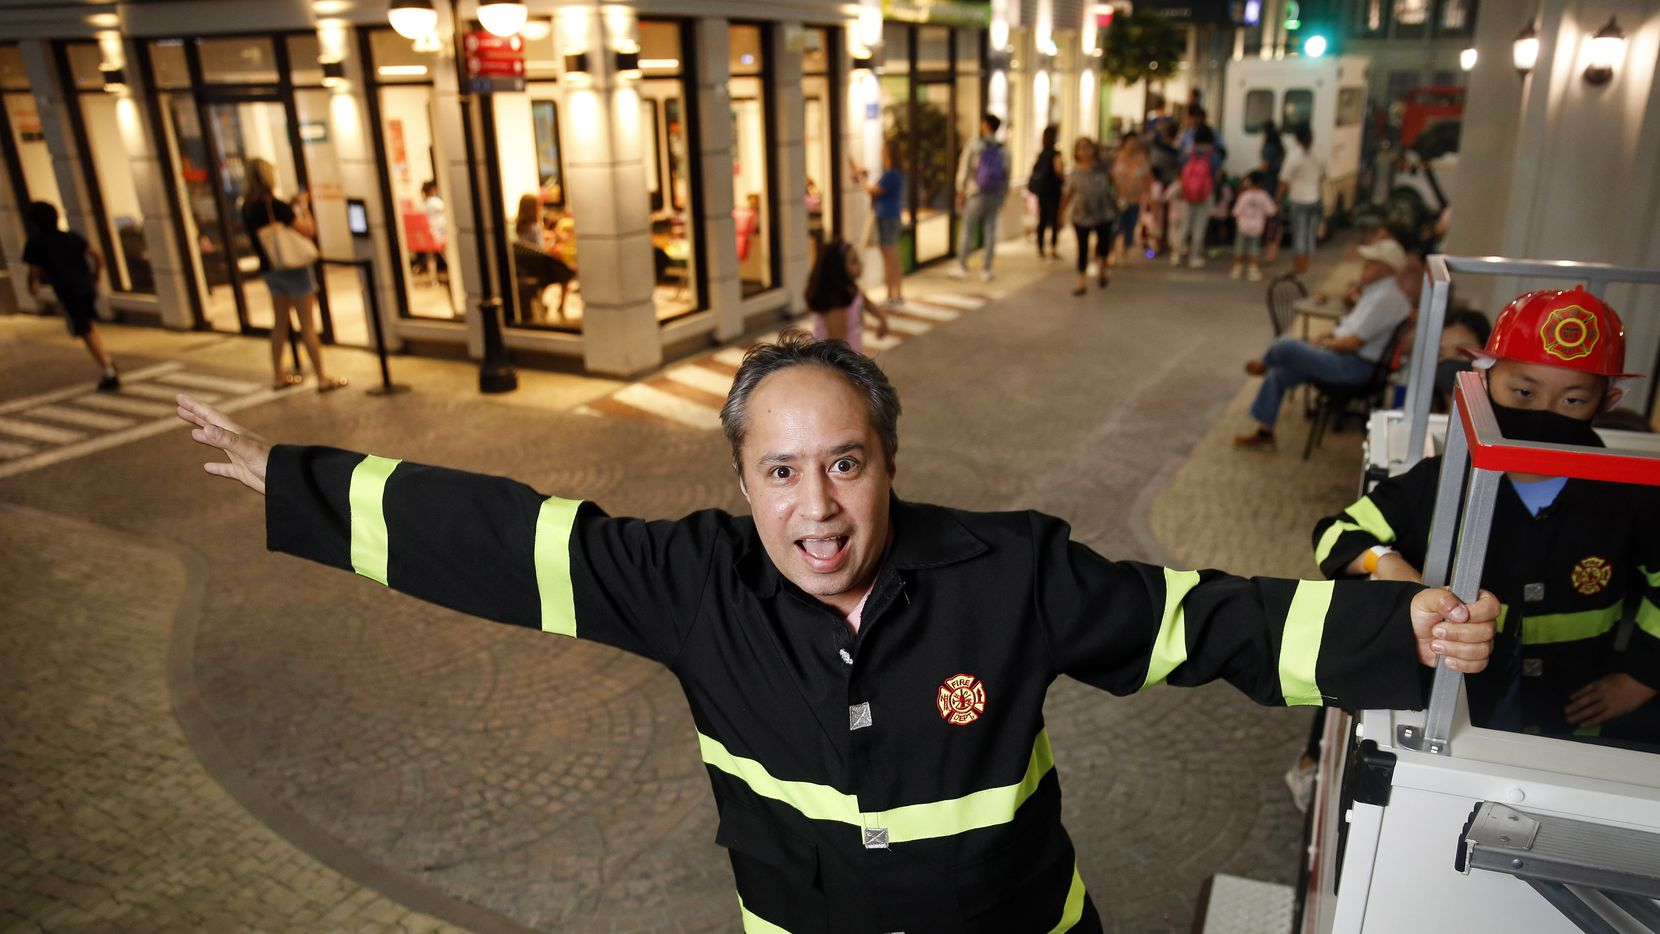 KidZania USA's chief of staff and business liaison officer Enrique Mena poses on the back of a kid-sized fire truck at their only United States location at Stonebriar Centre in Frisco, Texas, July 16, 2021.  Kidzania is an entertainment/interactive theme park for children ages 4-14. The two story location has 100 activities in 40 kid-sized store fronts. (Tom Fox/The Dallas Morning News)